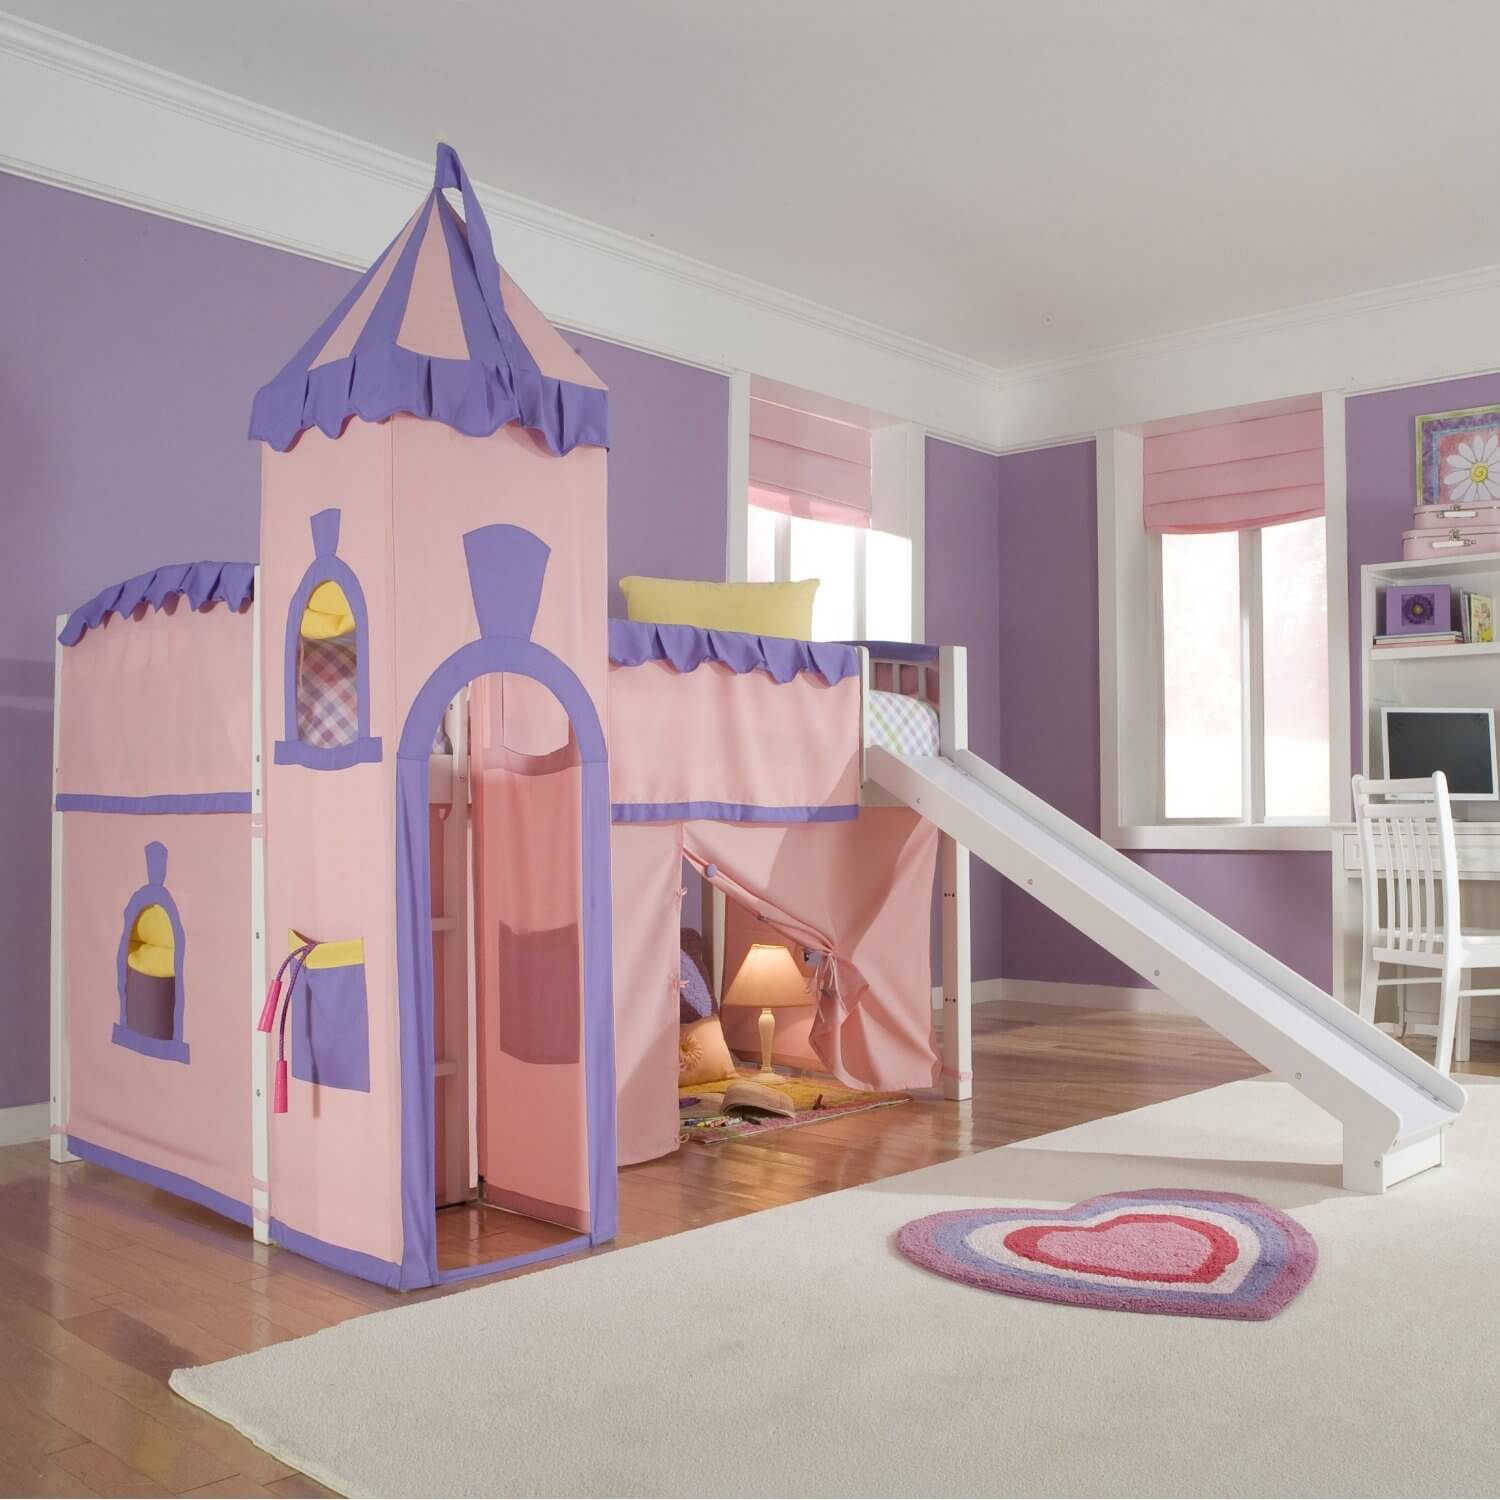 Bunk beds with slide and stairs - Pink And Purple Princess Castle Loft Bed With Slide